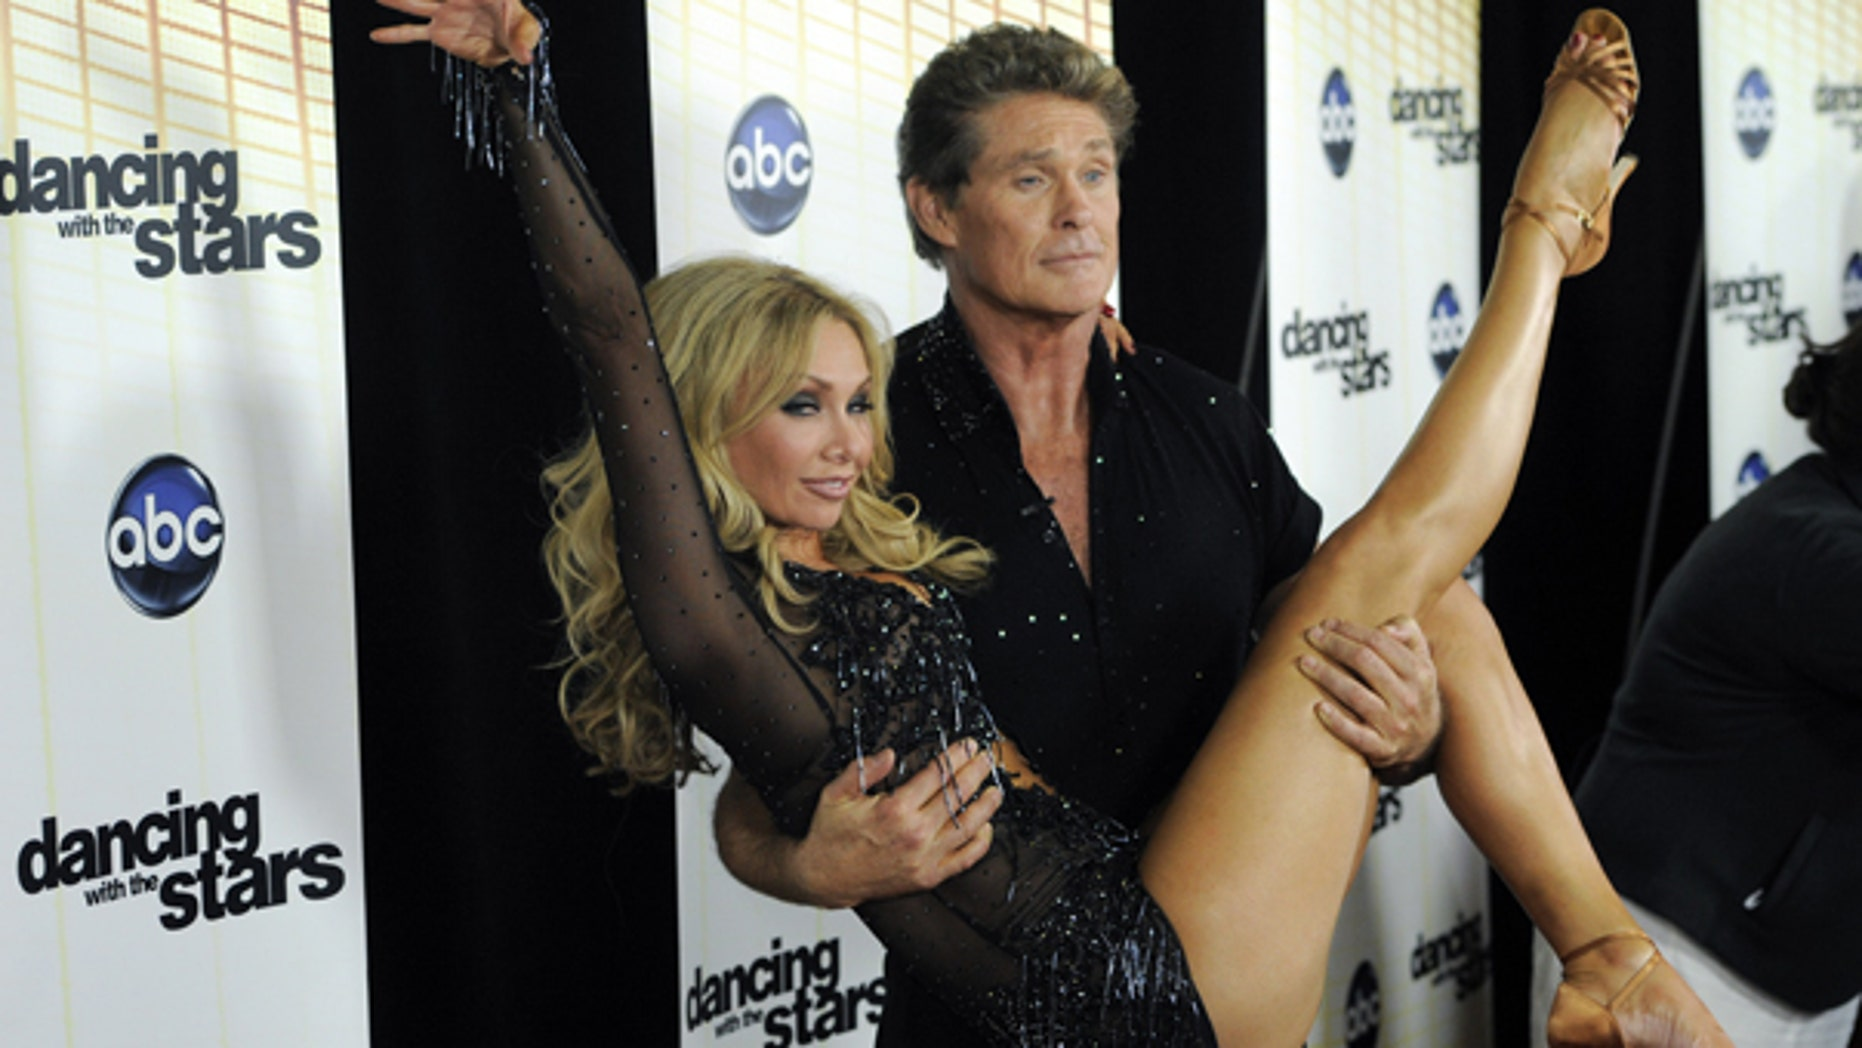 Sept. 20: Contestant David Hasselhoff and his dance partner Kym Johnson pose together following the 11th season premiere of 'Dancing with the Stars.' Hasselhoff was the first to get voted off the show.